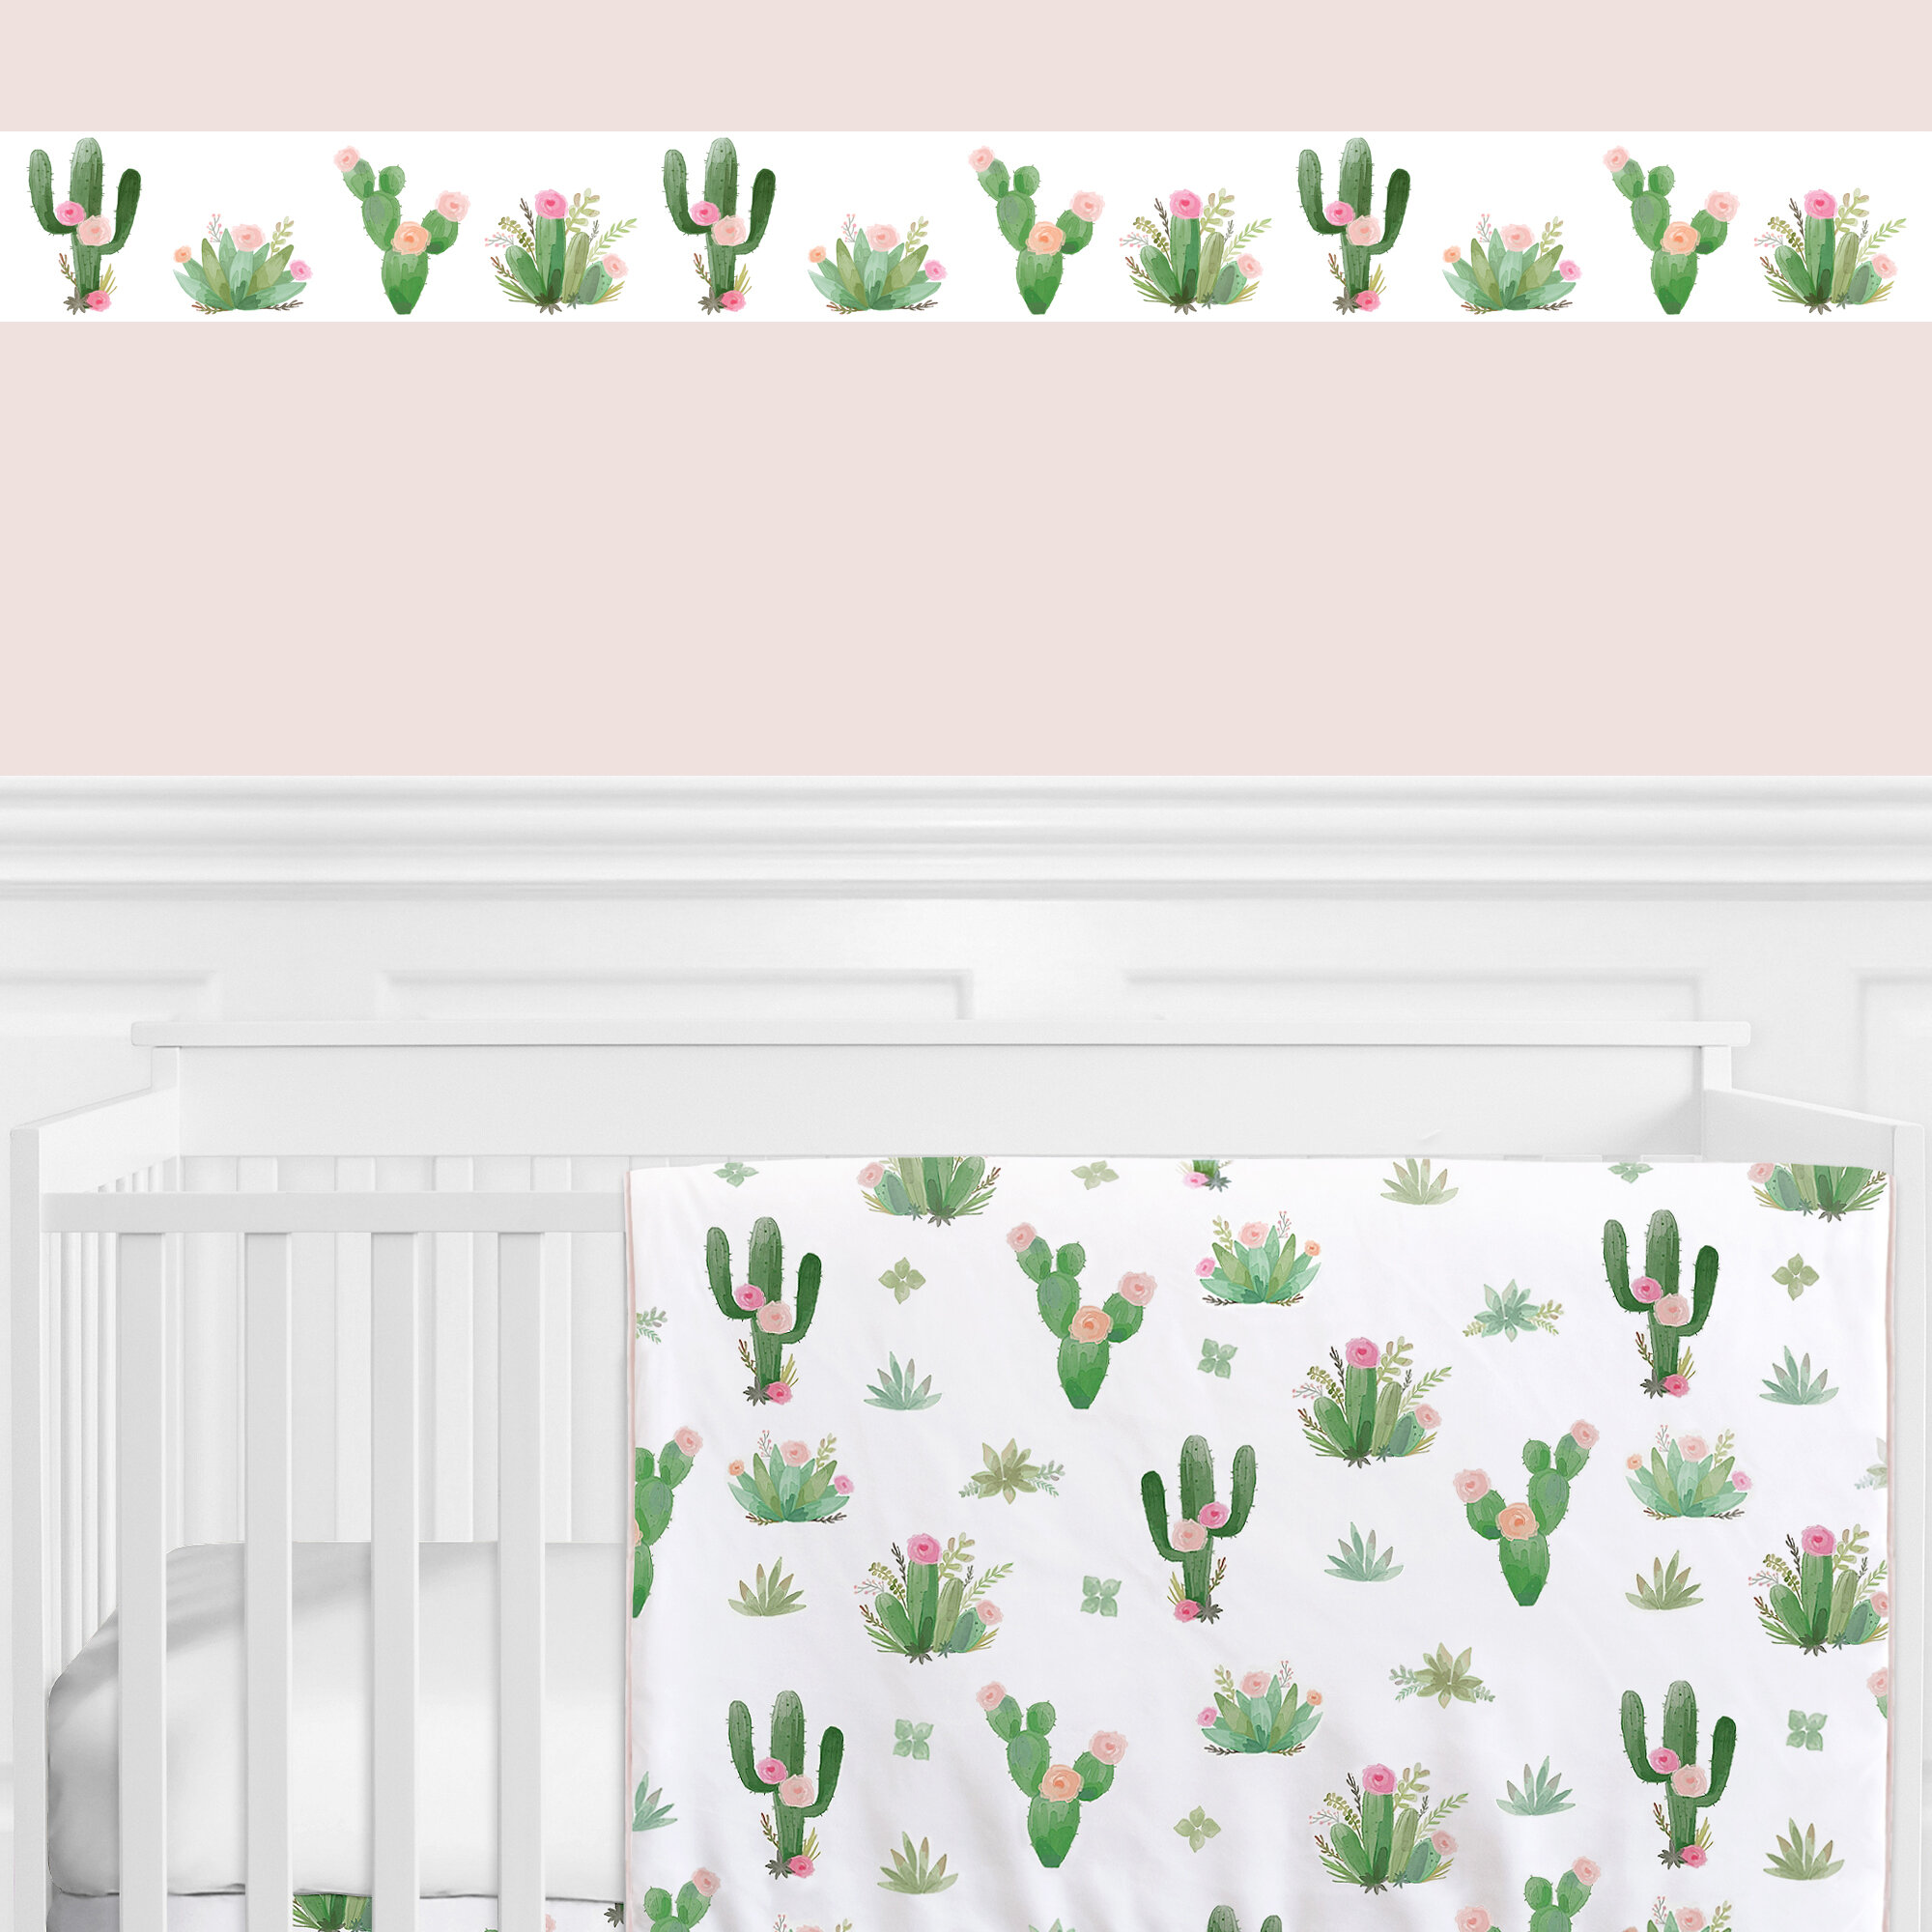 Sweet Jojo Designs Cactus Floral 15 L X 6 W Wallpaper Border